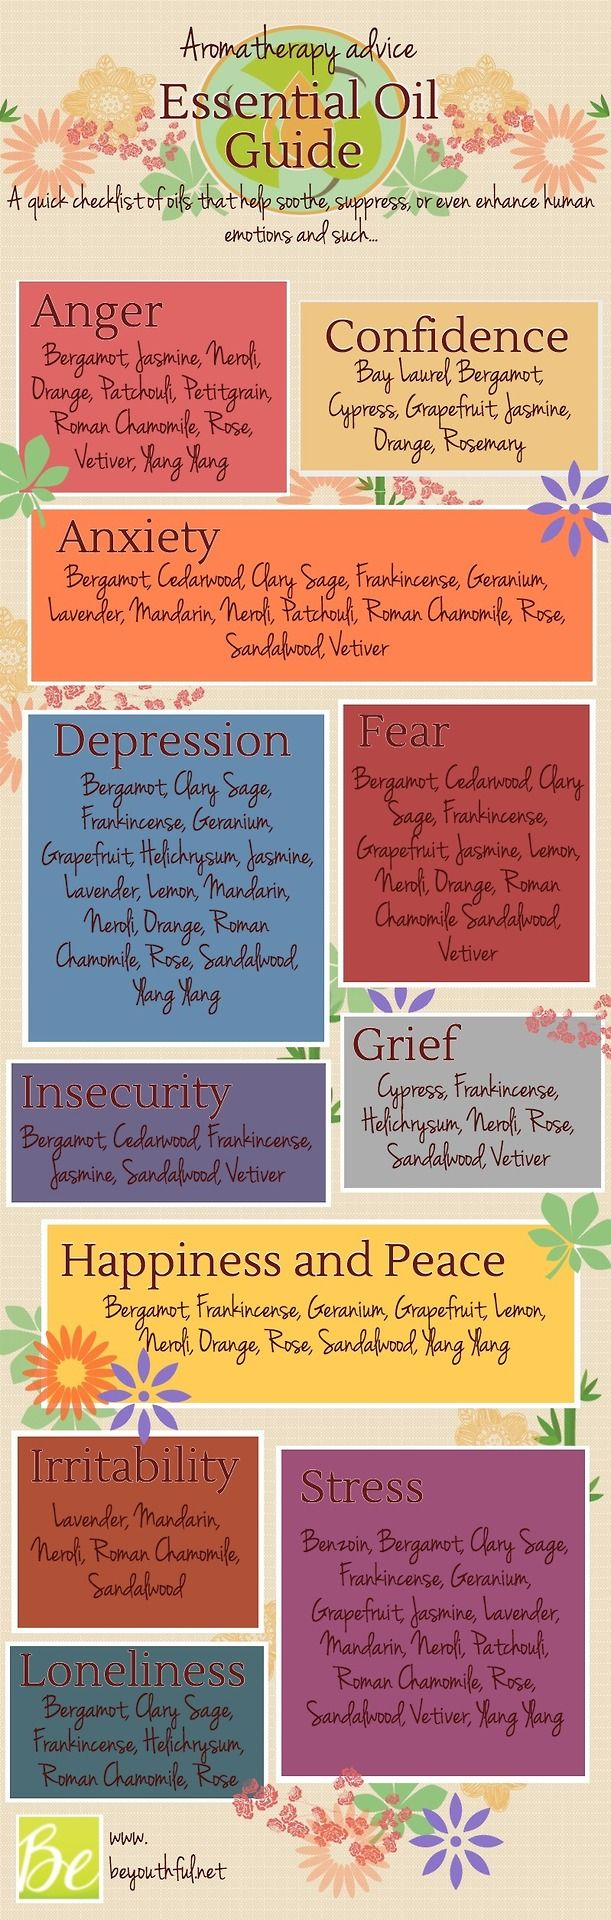 Essential oils for emotions and moods.